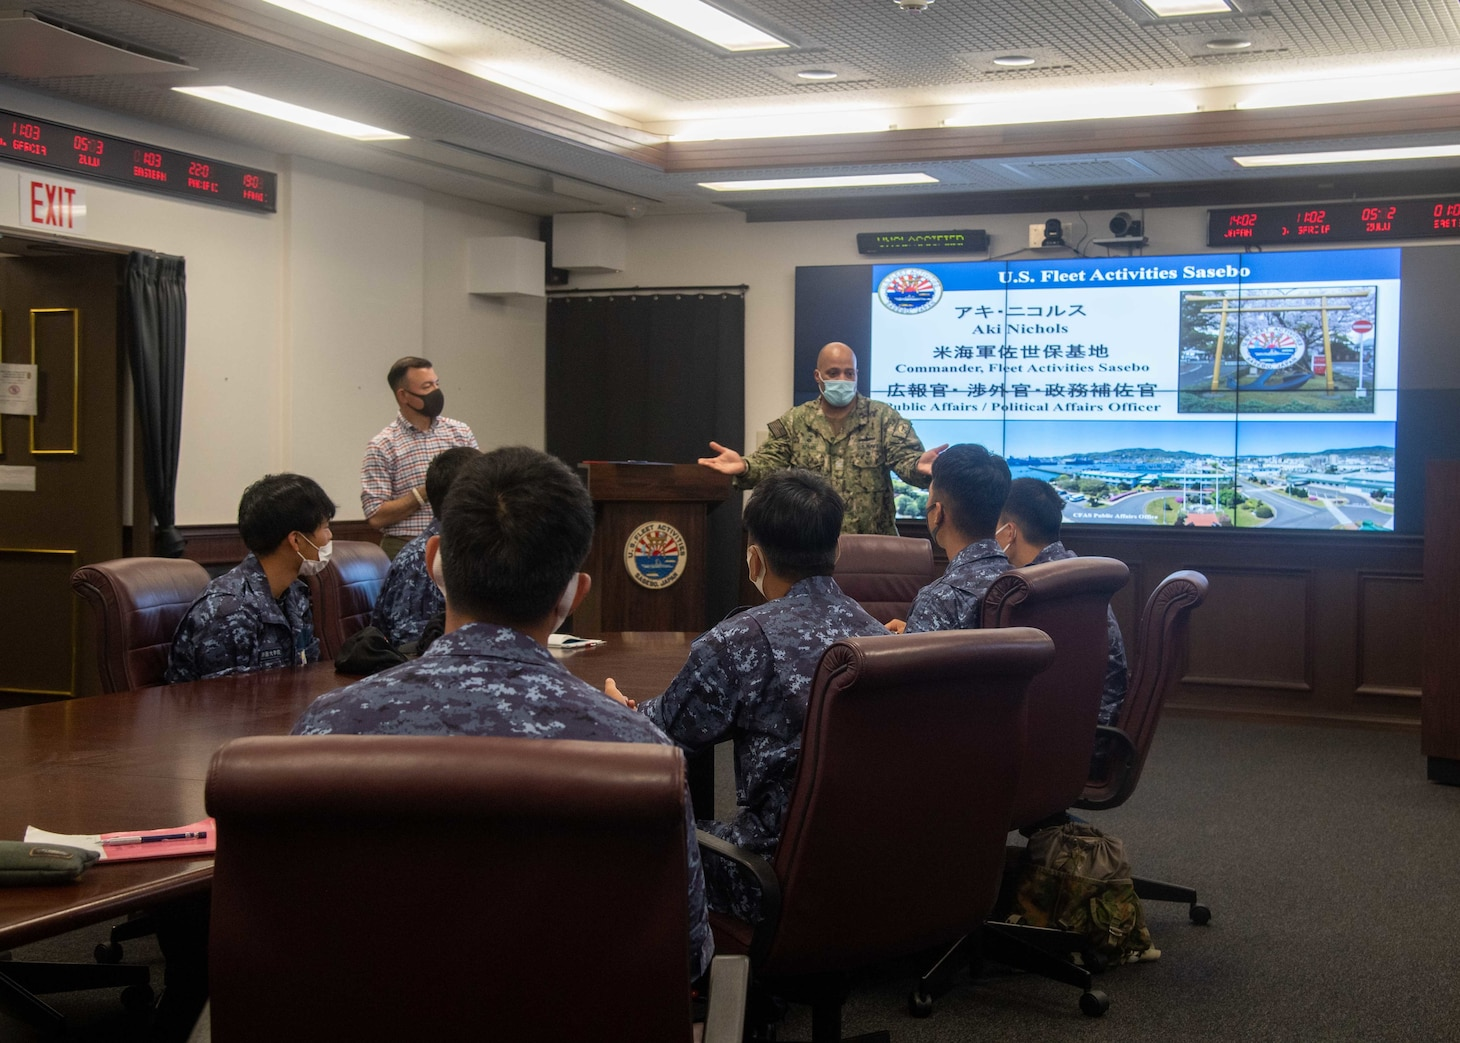 Capt. David Adams, Commander, Fleet Activities Sasebo (CFAS), speaks to National Defense Academy of Japan cadets at CFAS July 14, 2021. The cadets toured CFAS facilities and visited the amphibious transport dock ship USS Green Bay (LPD 20) which was the first ship tour at CFAS since the beginning of the COVID-19 pandemic.